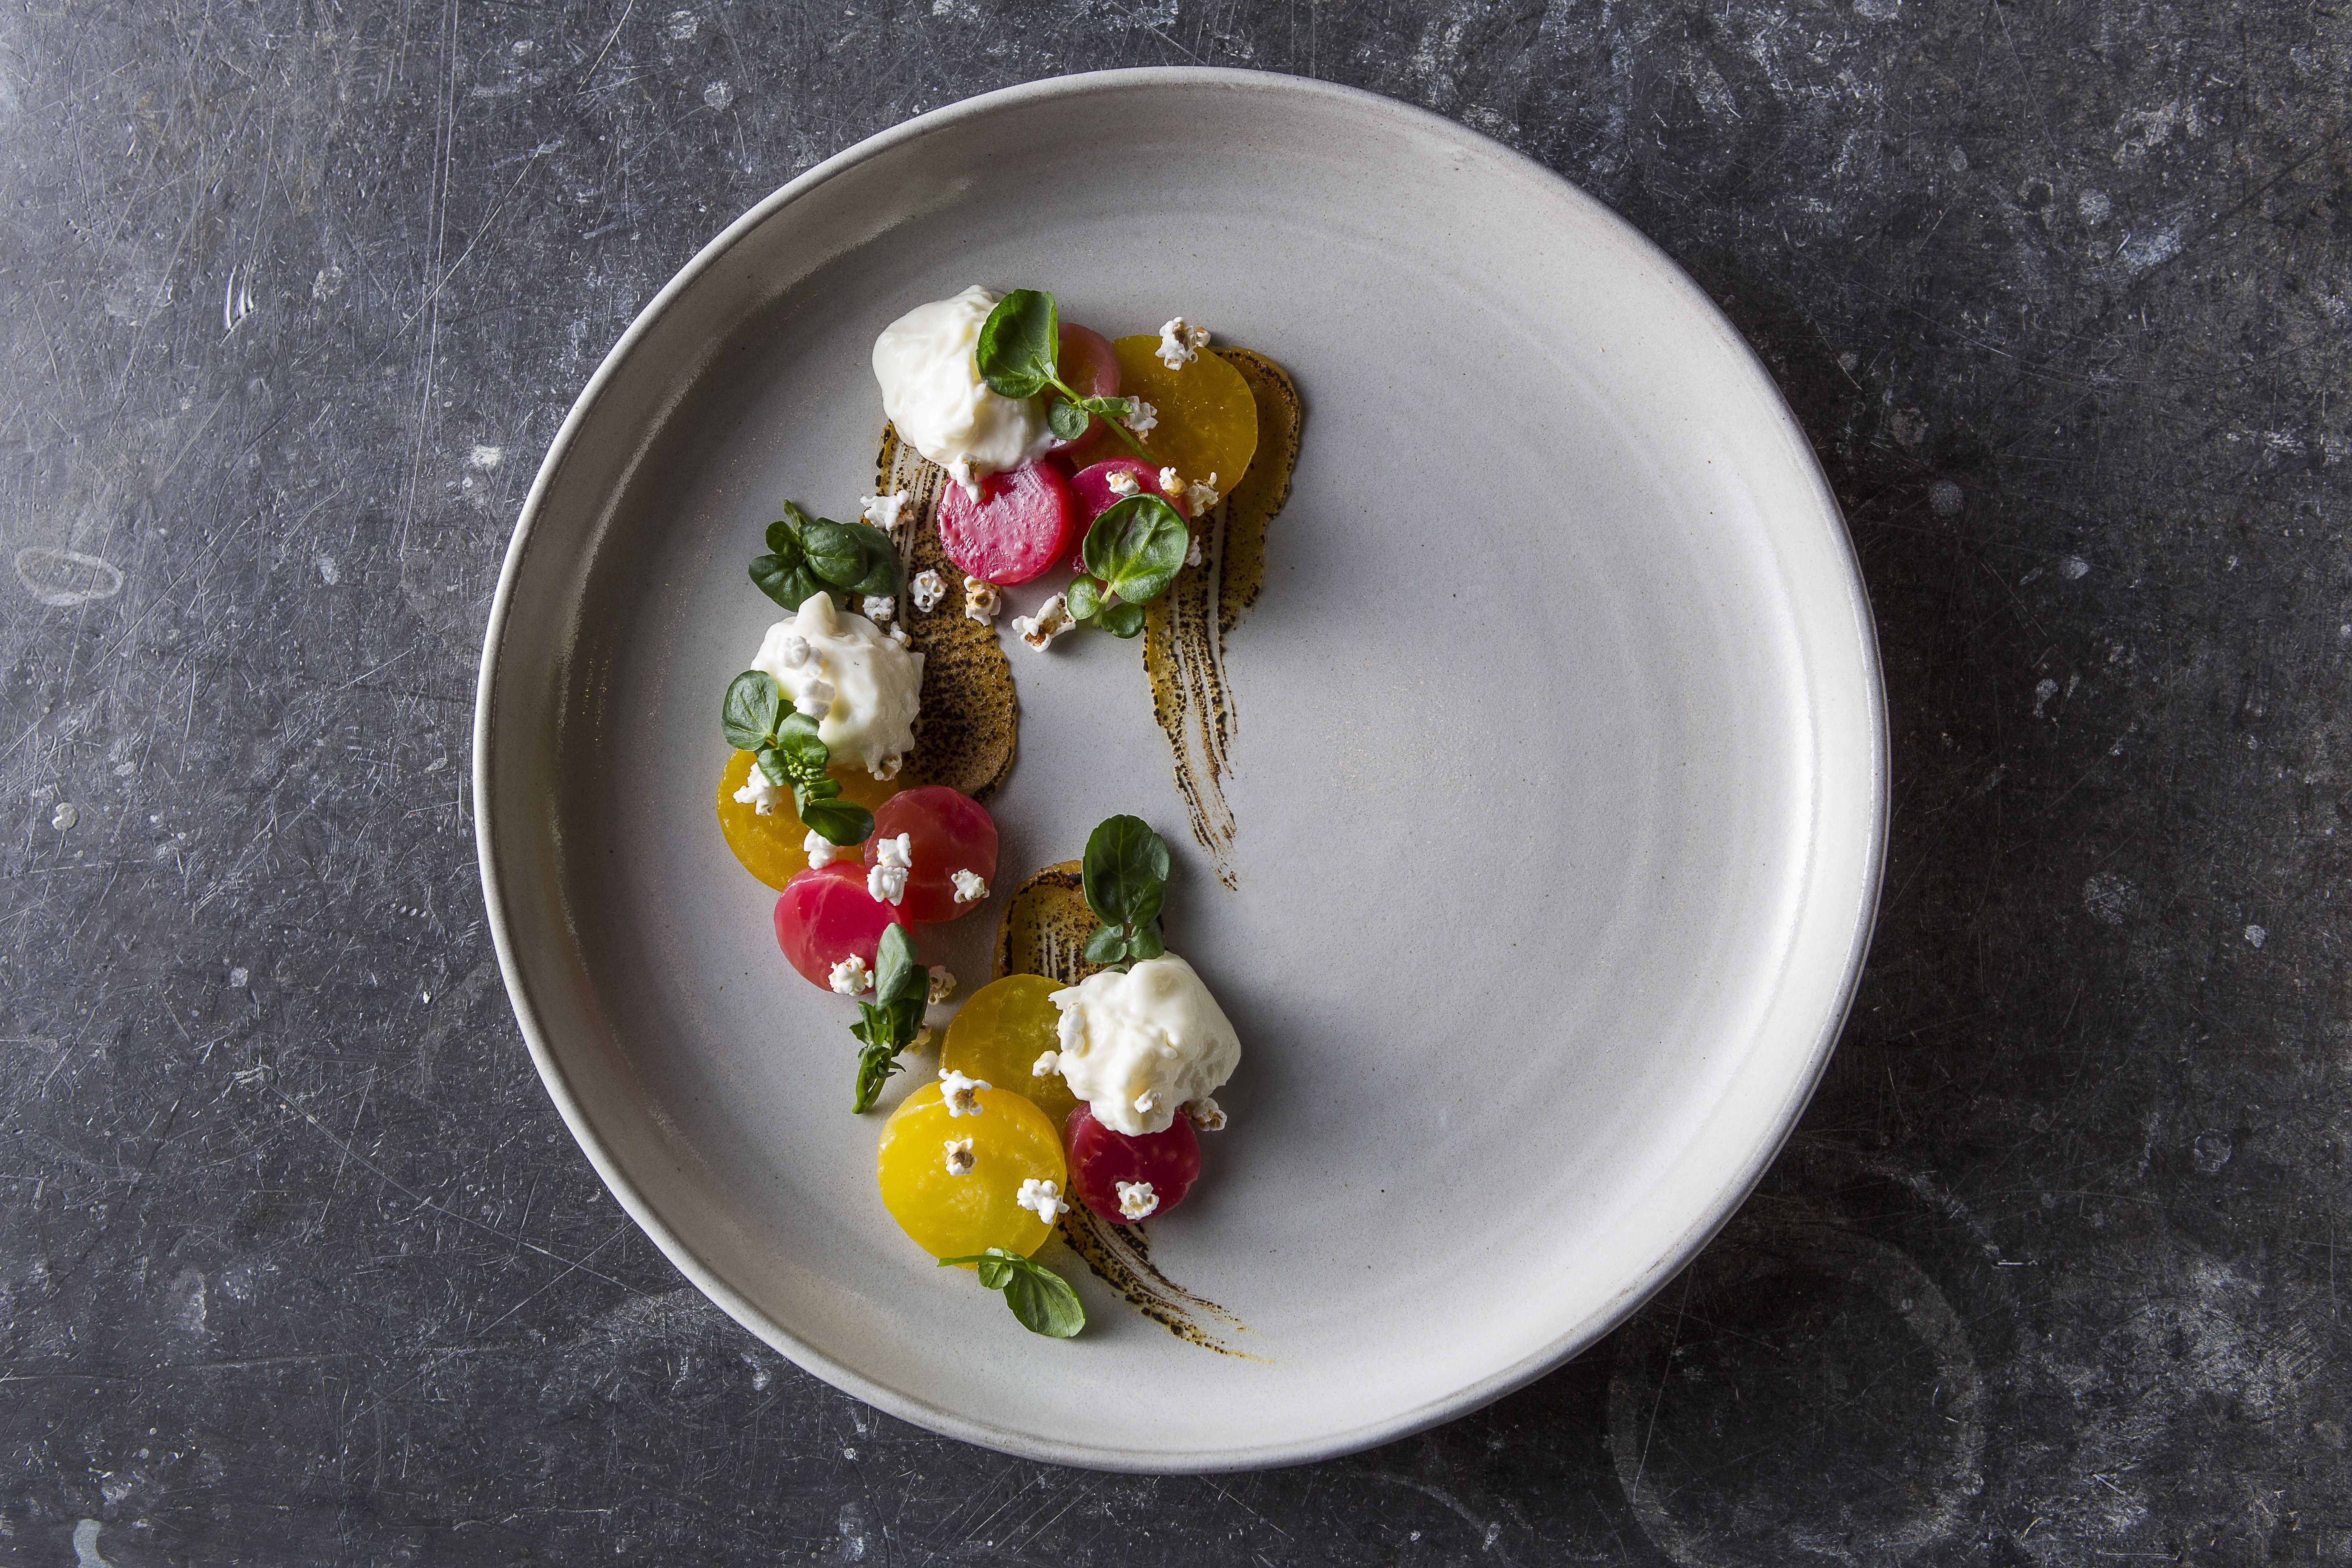 Beets Miso Burrata By Chef Andrew Zimmerman Photo By Paul Strabbing Perfect Food Fine Dining Recipes Food